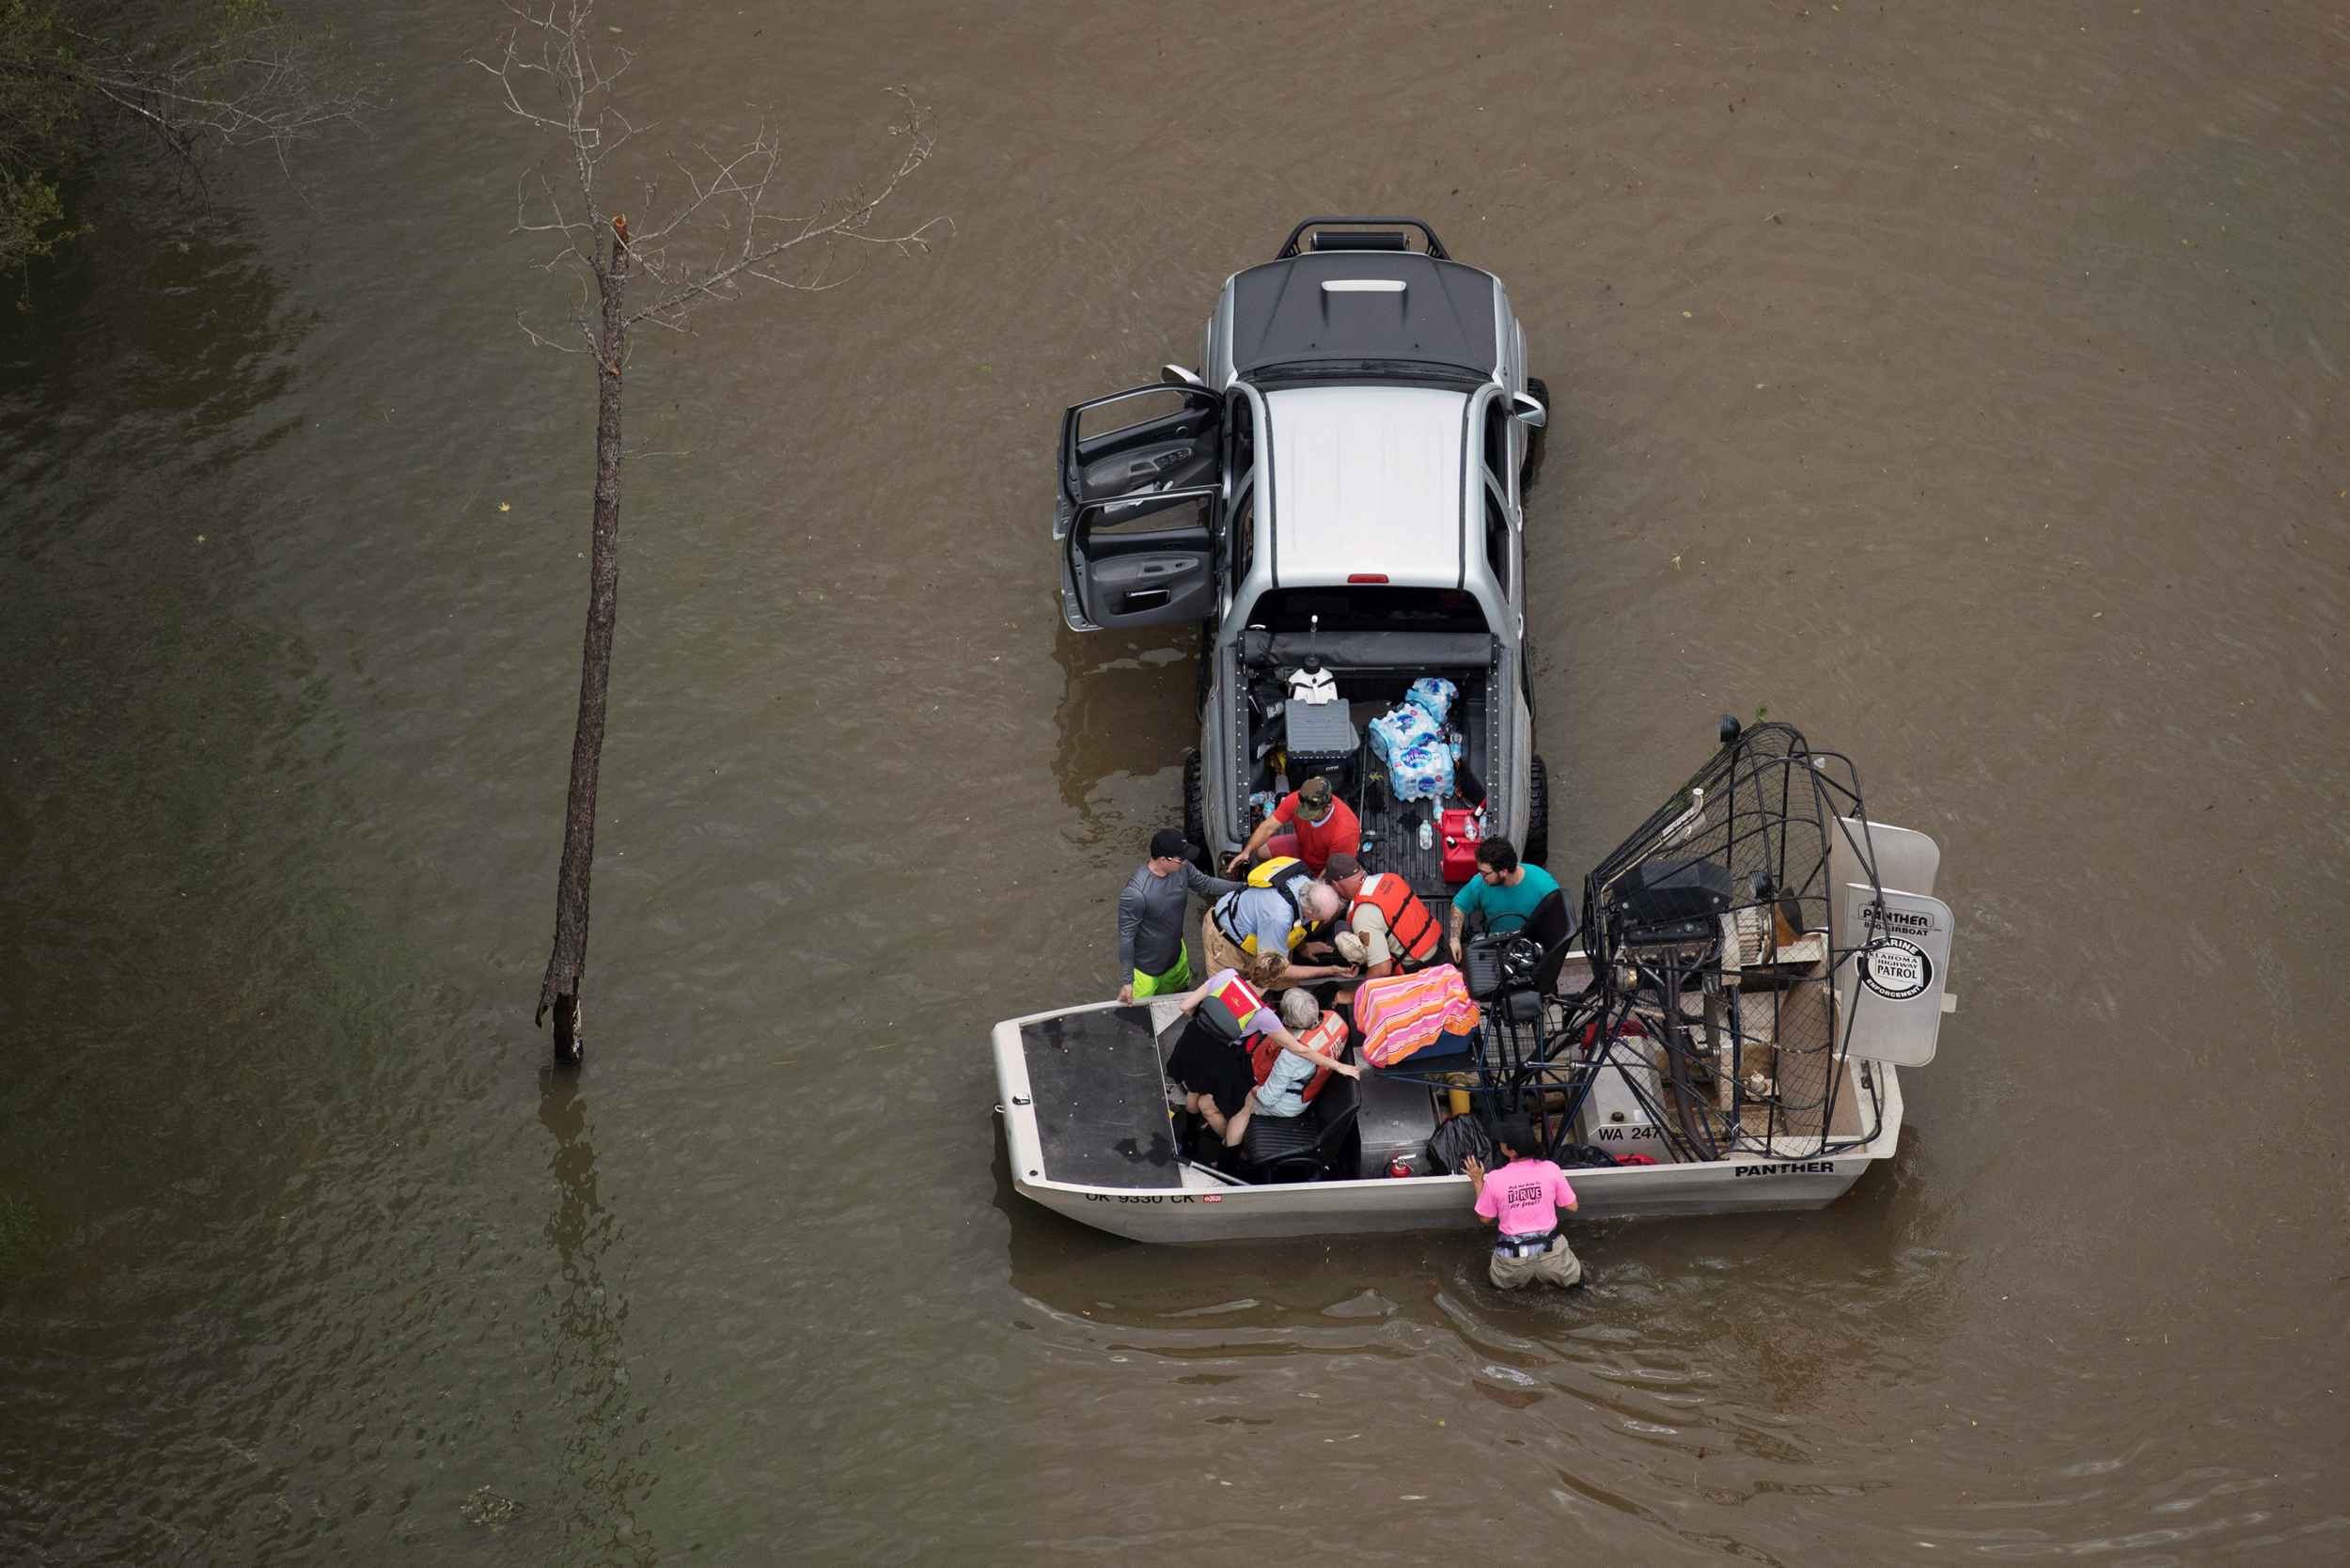 Image: Residents are evacuated through flood waters caused by Tropical Storm Harvey in West Houston, Texas